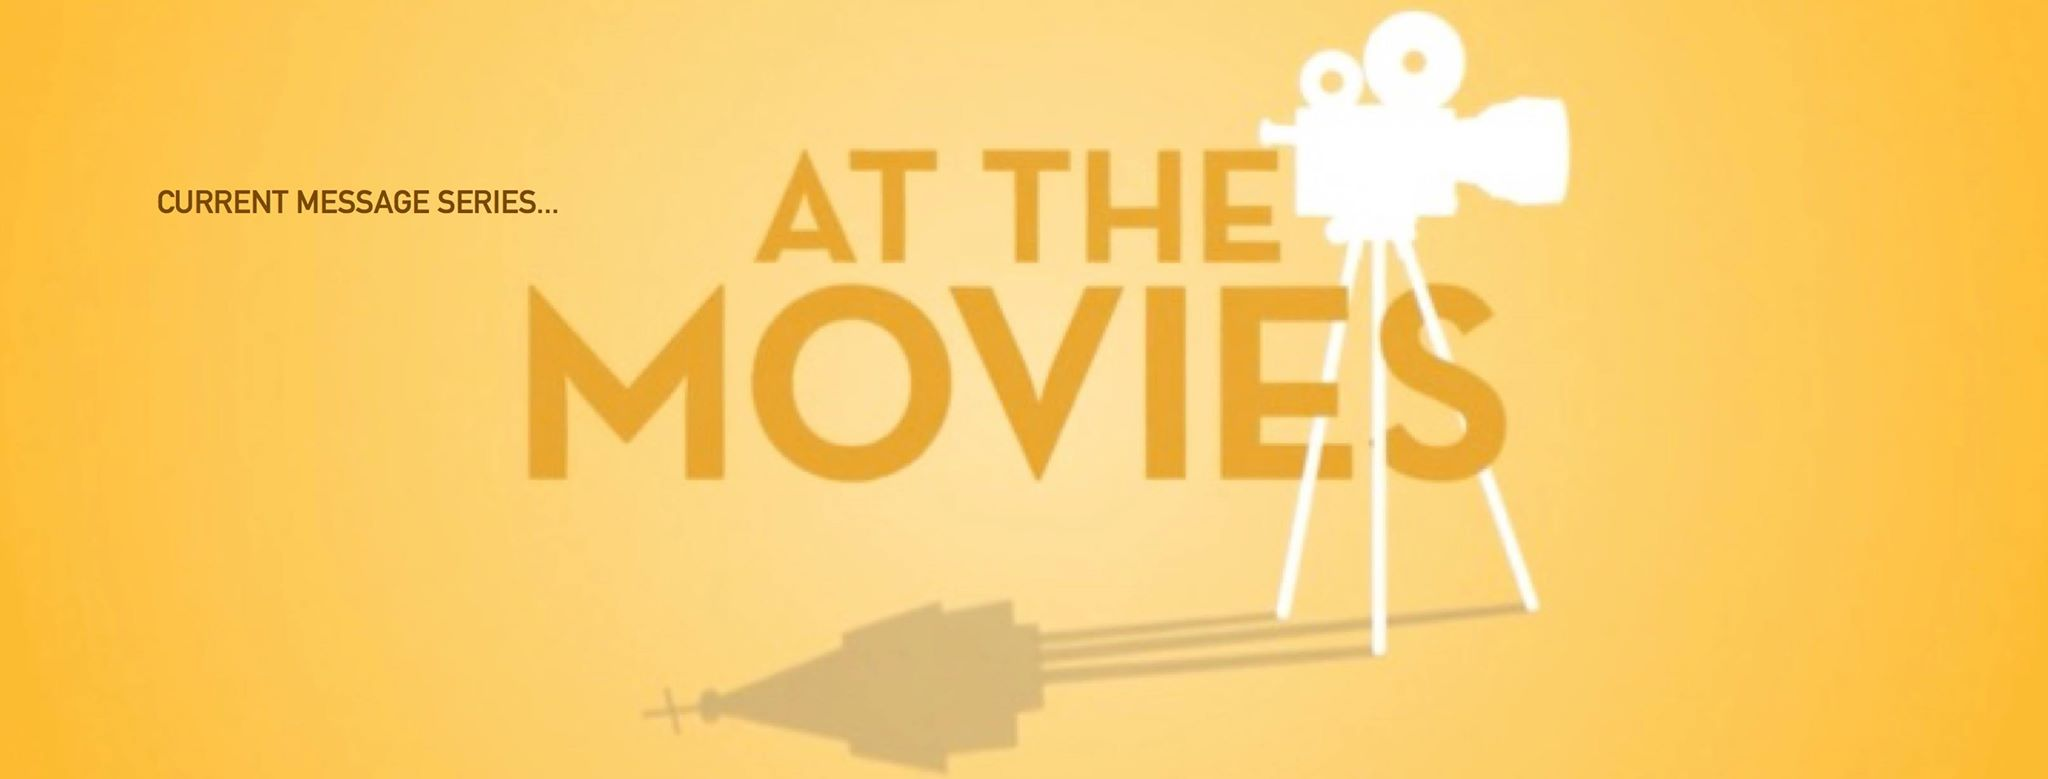 At the Movies - Sermon Series